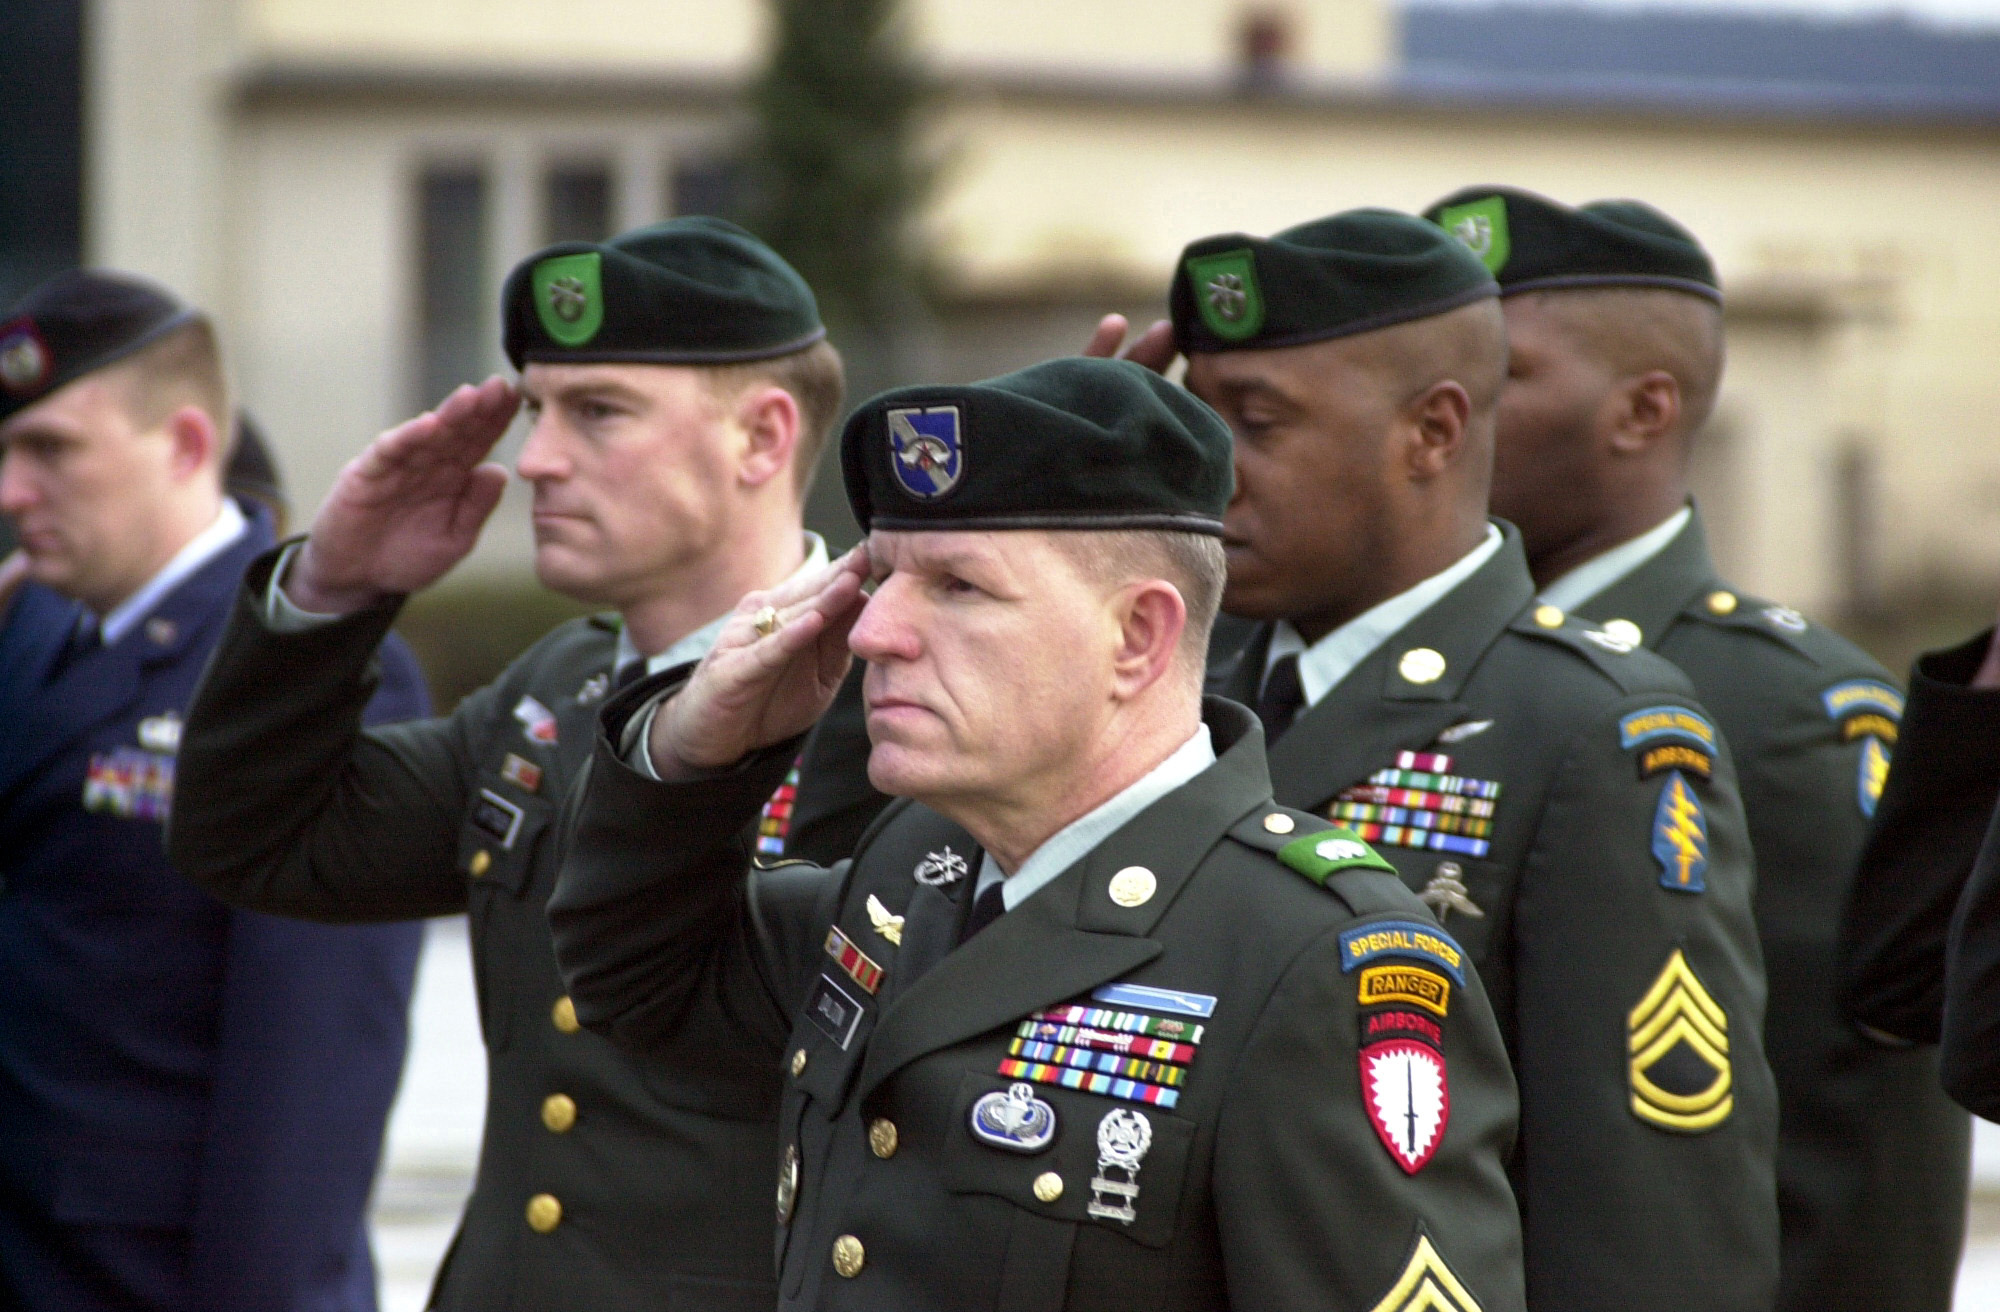 US_Army_Green_Berets_DF-SD-02-02957.JPEG